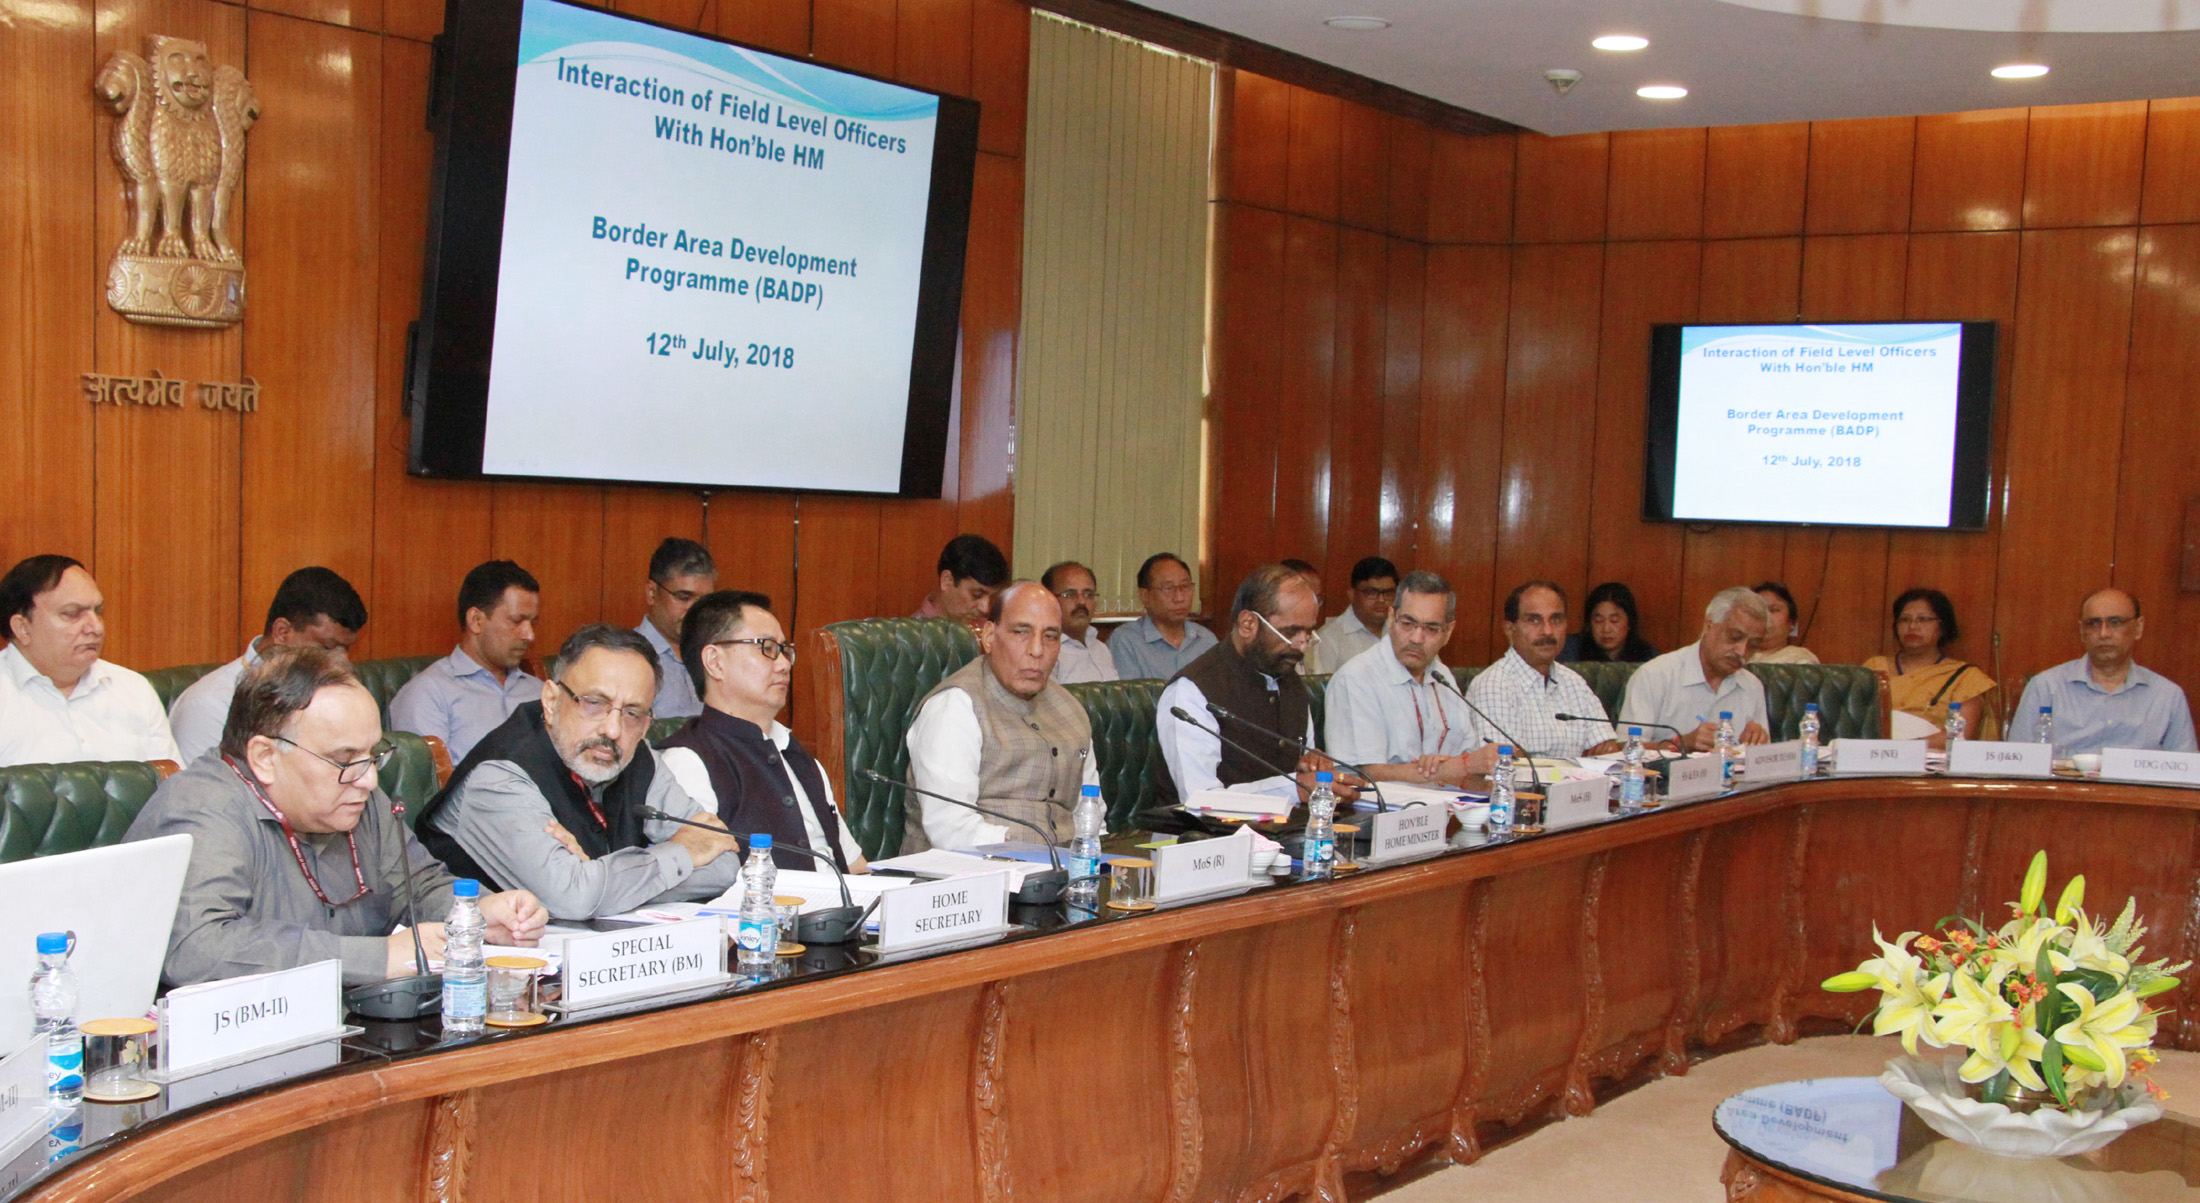 The Union Home Minister, Shri Rajnath Singh chairing an Interaction with the Field Level Officers to review the Border Area Development Programme (BADP), in New Delhi on July 12, 2018. The Ministers of State for Home Affairs, Shri Hansraj Gangaram Ahir and Shri Kiren Rijiju and the Union Home Secretary, Shri Rajiv Gauba and senior officers are also seen.